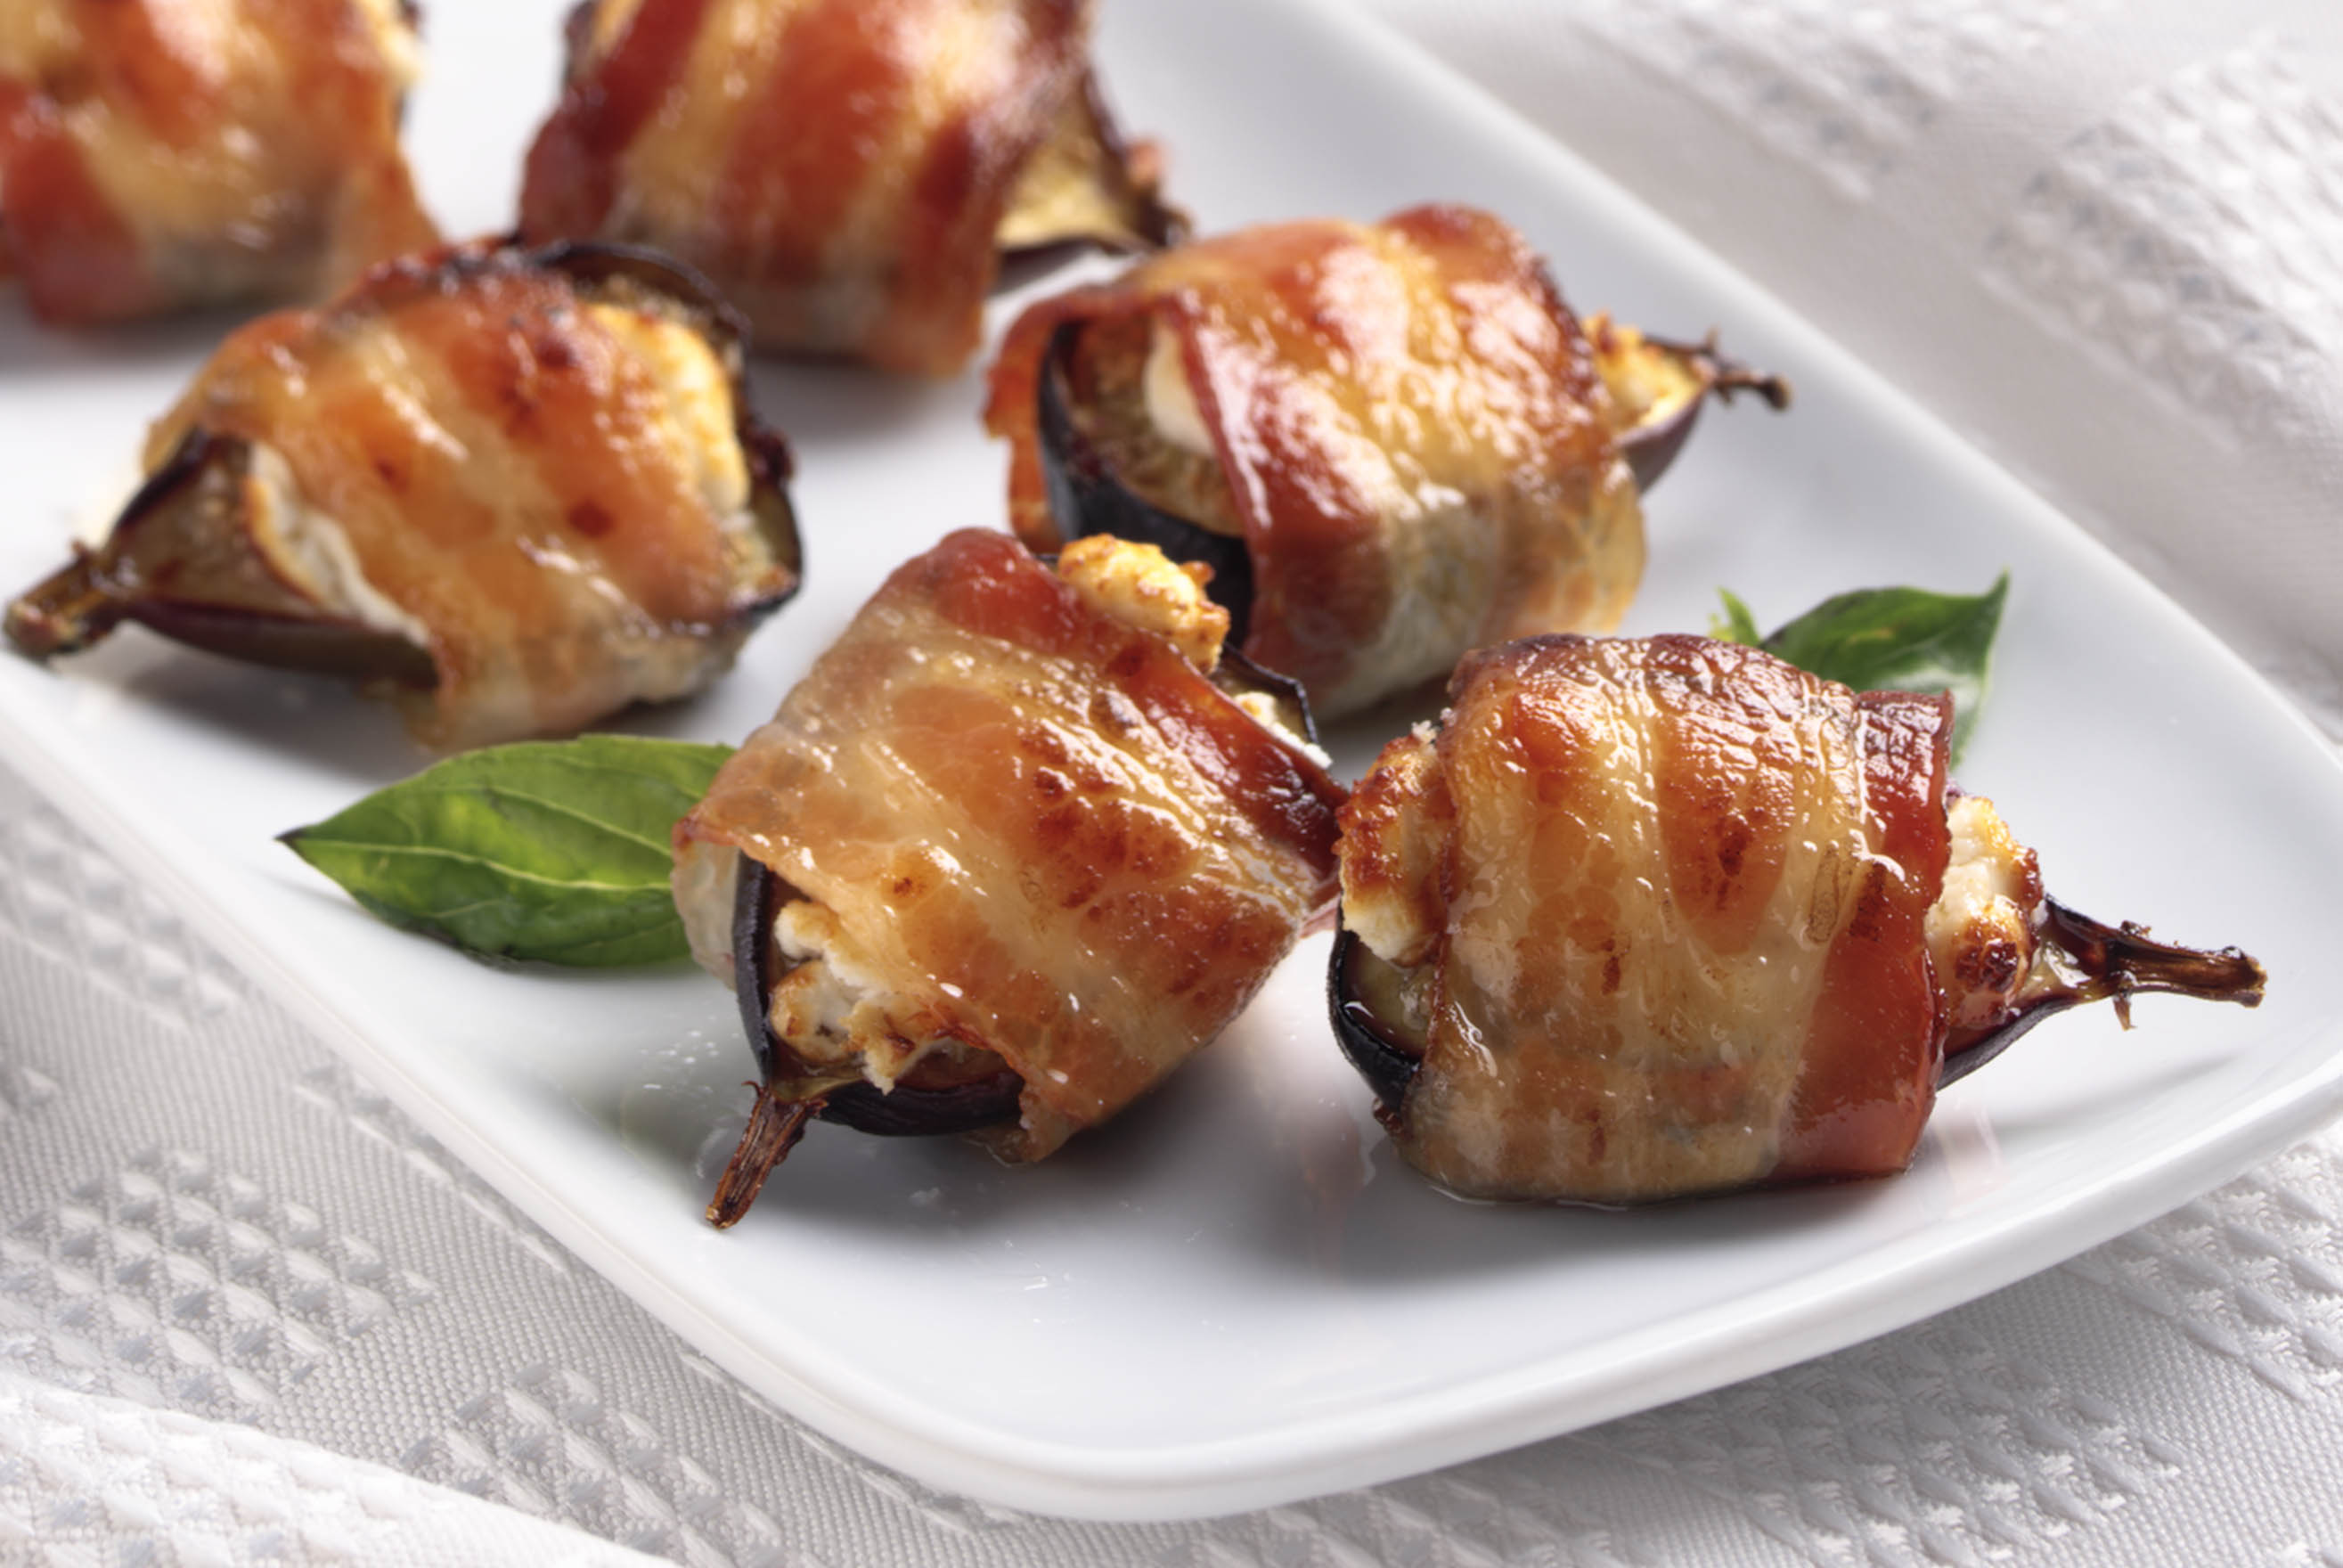 Bacon-Wrapped Figs Image 1